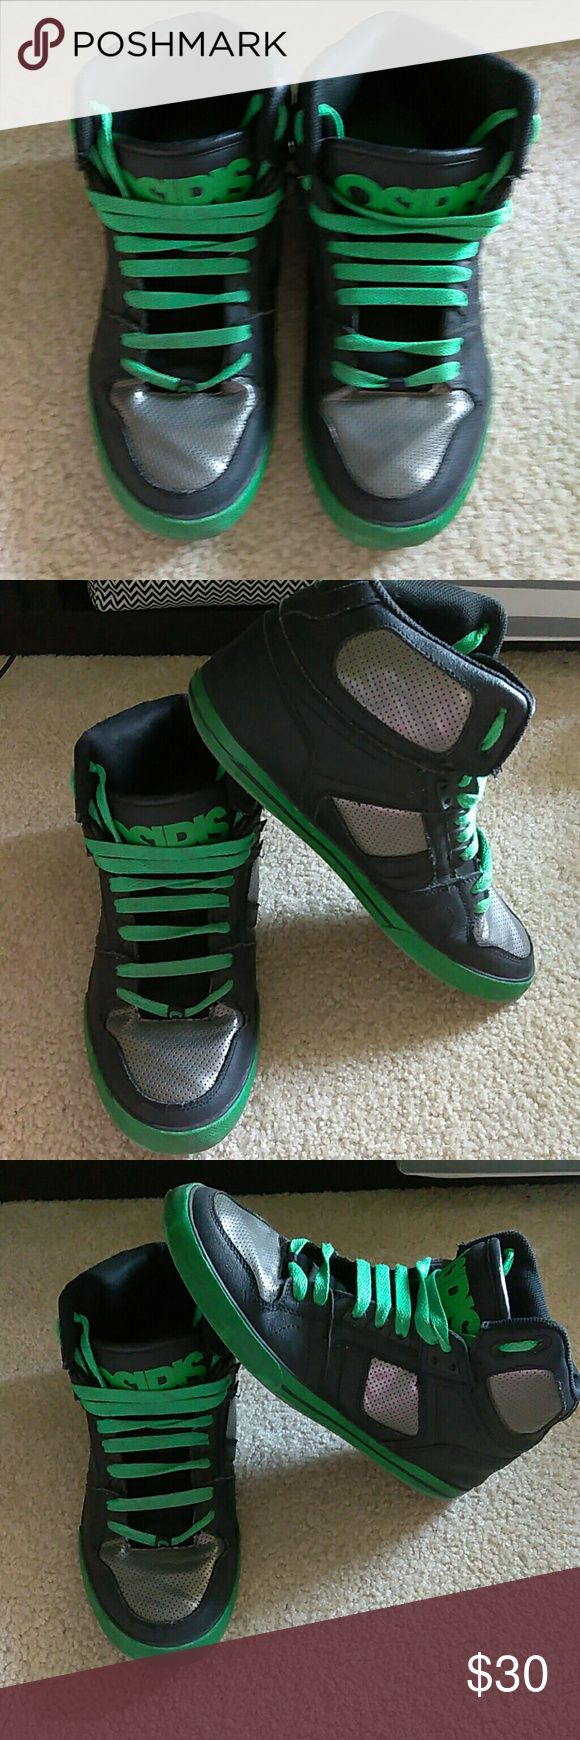 Osiris men's shoes Osiris mens sneakers. Worn but still in good shape! Osiris Shoes Sneakers